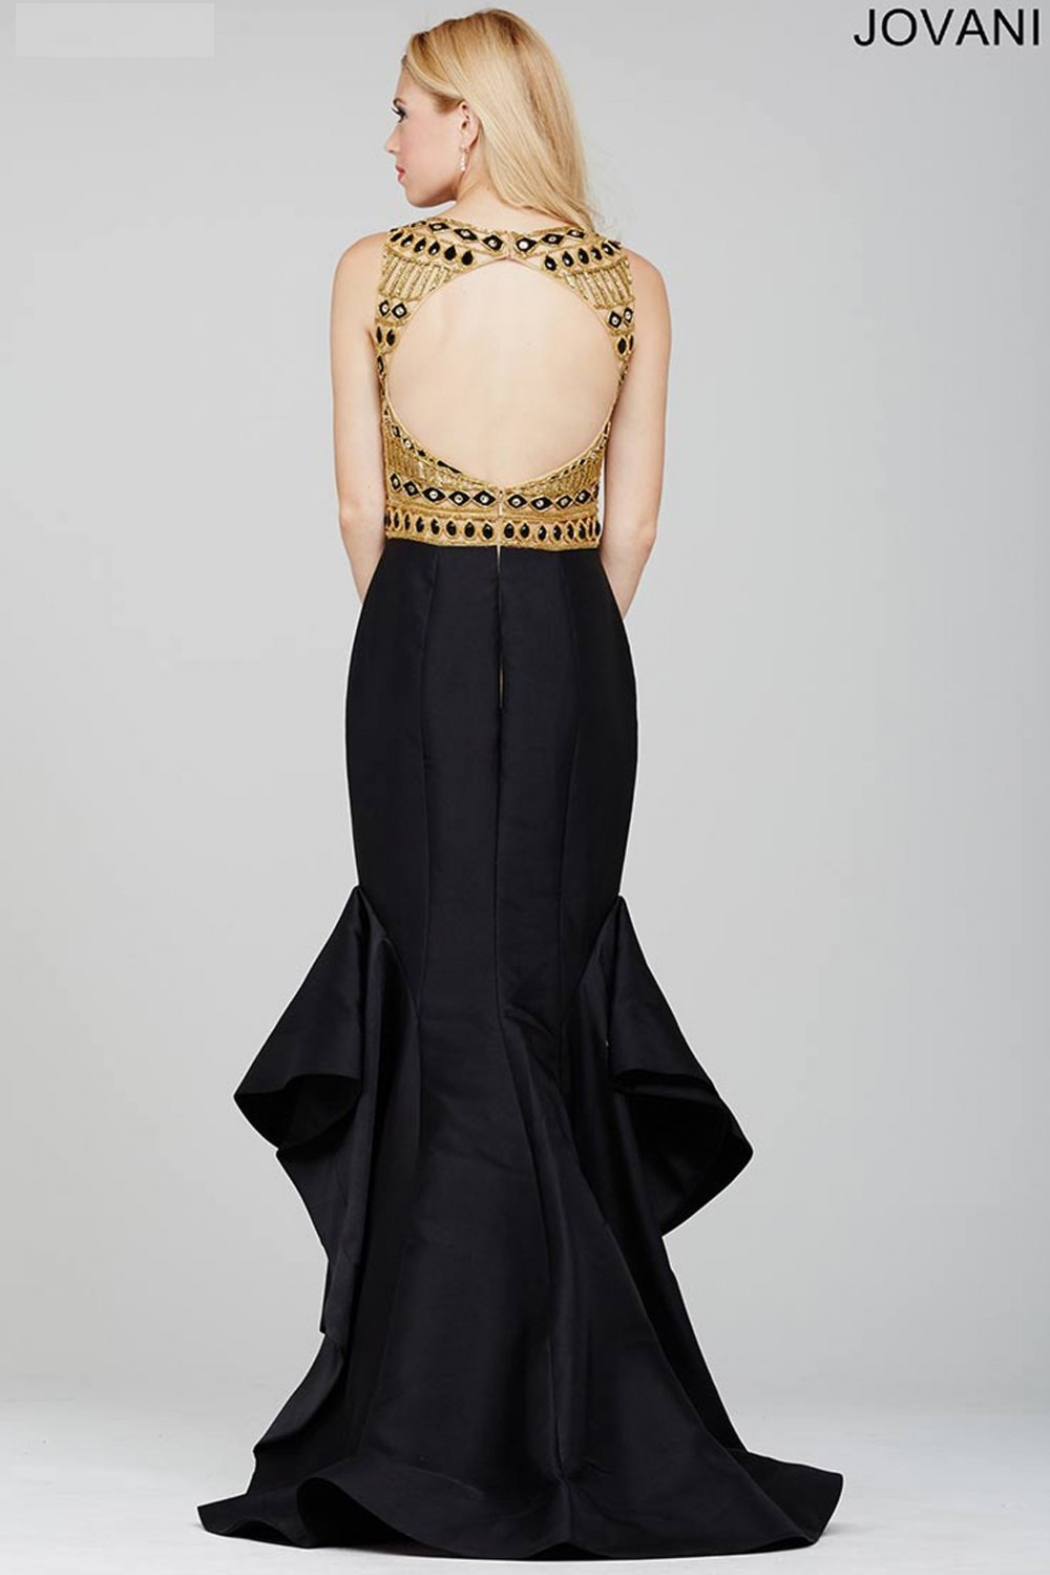 Jovani 28432A - Beaded Top with Ruffled Trumpet Skirt Gown - Main Image